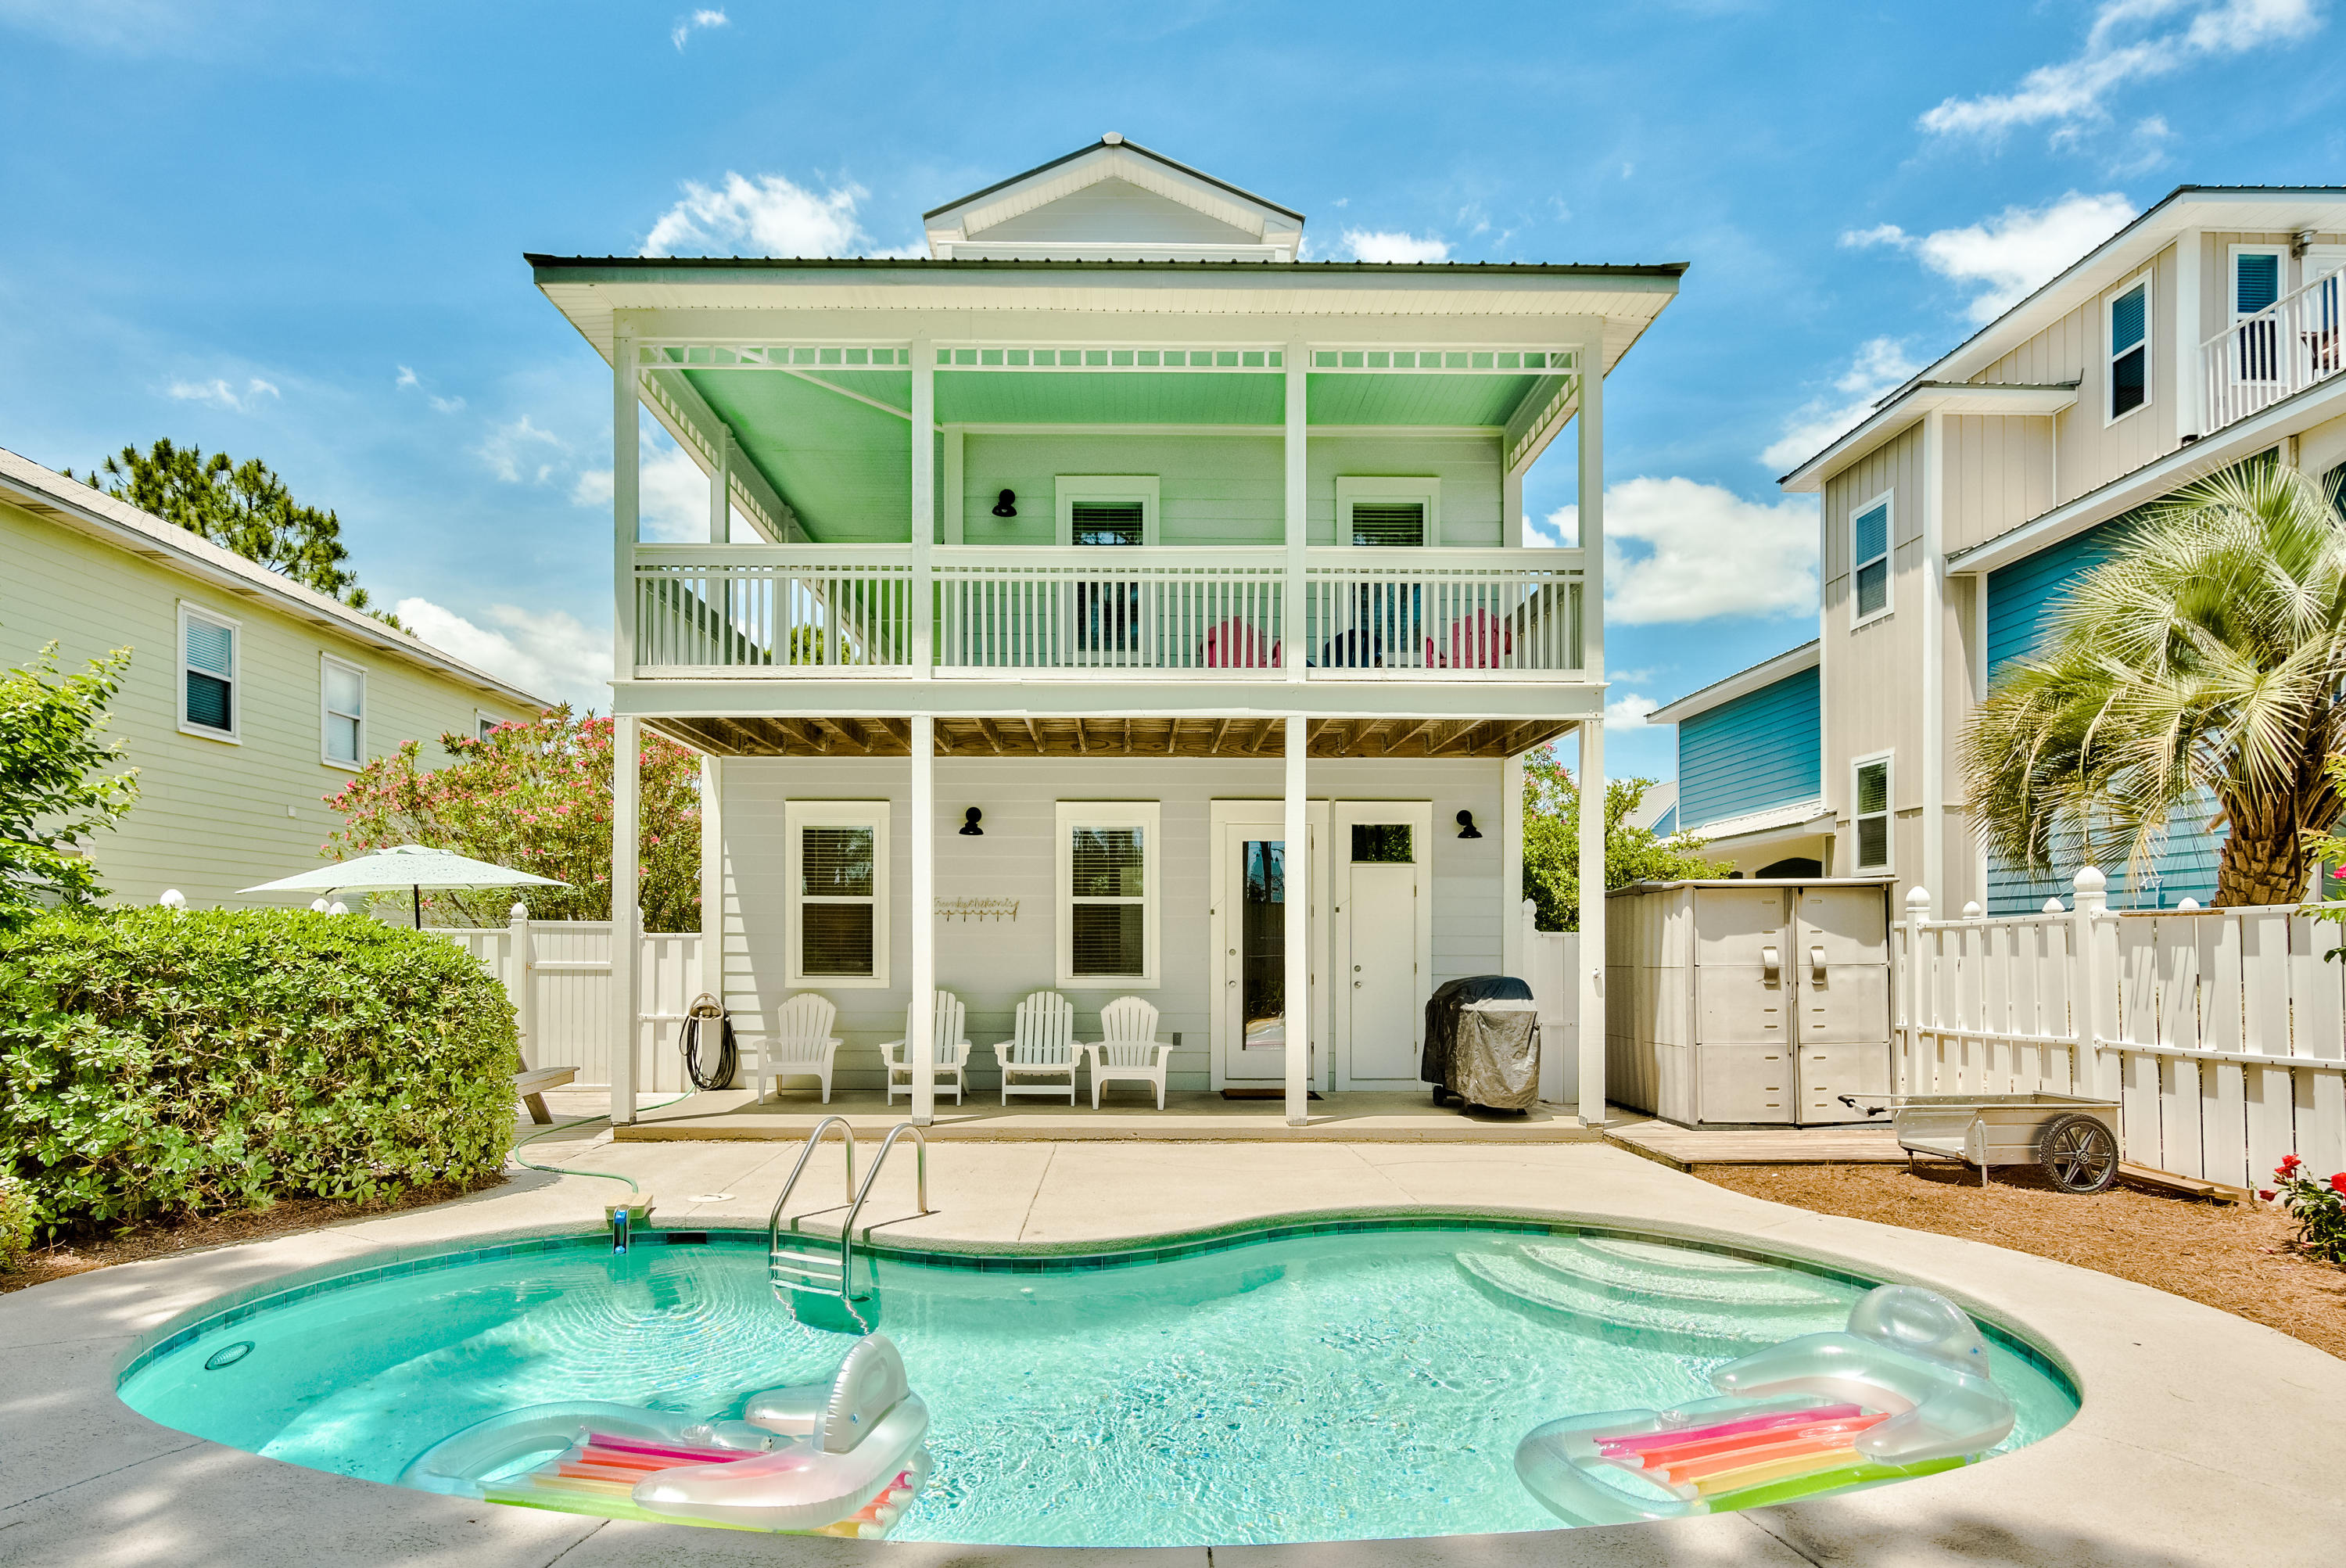 Located on 30A in the heart of Seagrove Beach, this 4 bedroom beach getaway boasts gulf views from two floors and big rental numbers, with easy access to the gorgeous Gulf of Mexico just over 200 yards away. The third floor is multipurposed with a bunkroom and separate living zone equipped with a wetbar. Experience multiple views of the gulf waters through the beautiful Florida treetops from both inside and out on the tower balcony. The home's wraparound deck and backyard's private heated pool maximize interior/exterior flow. With over 1000 sqft of outdoor deck and balcony, even with a full house, there is private space for all to embrace. Poolside includes dining, grilling and lounge areas. Home is furnished, decorated and fully stocked. Sleeping 12+ with over 80K in rentals projected. Comes with many recent improvements, including a new pool heater and pump, refrigerator, stove and washer and dryer. Upstairs hurricane rated slider recently added along with many updated furnishings, and more.  All measurements and information are deemed reliable but must be verified by the Buyer.